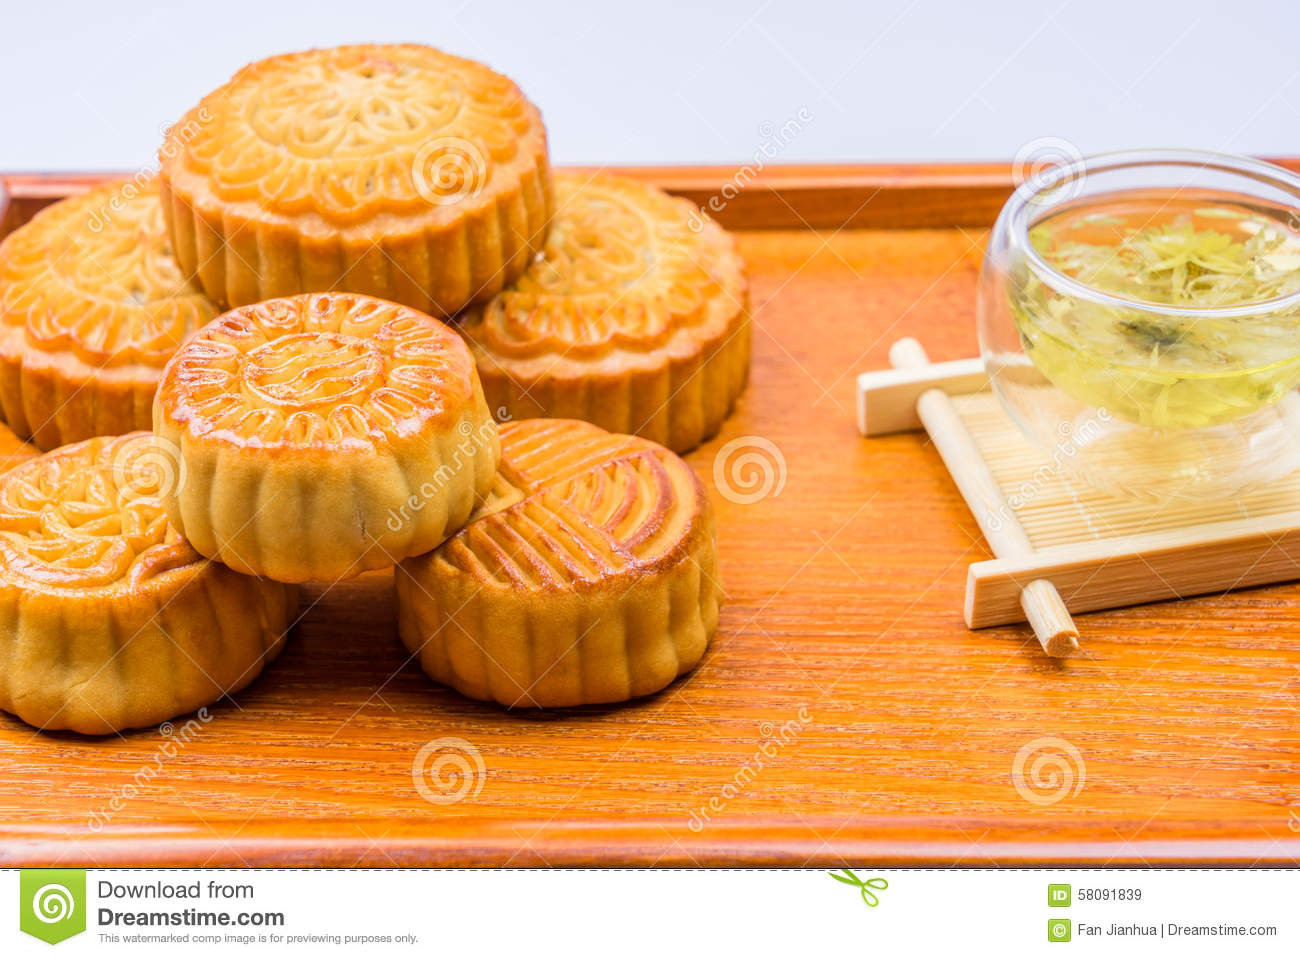 Is Moon Cake A Traditional Food In China